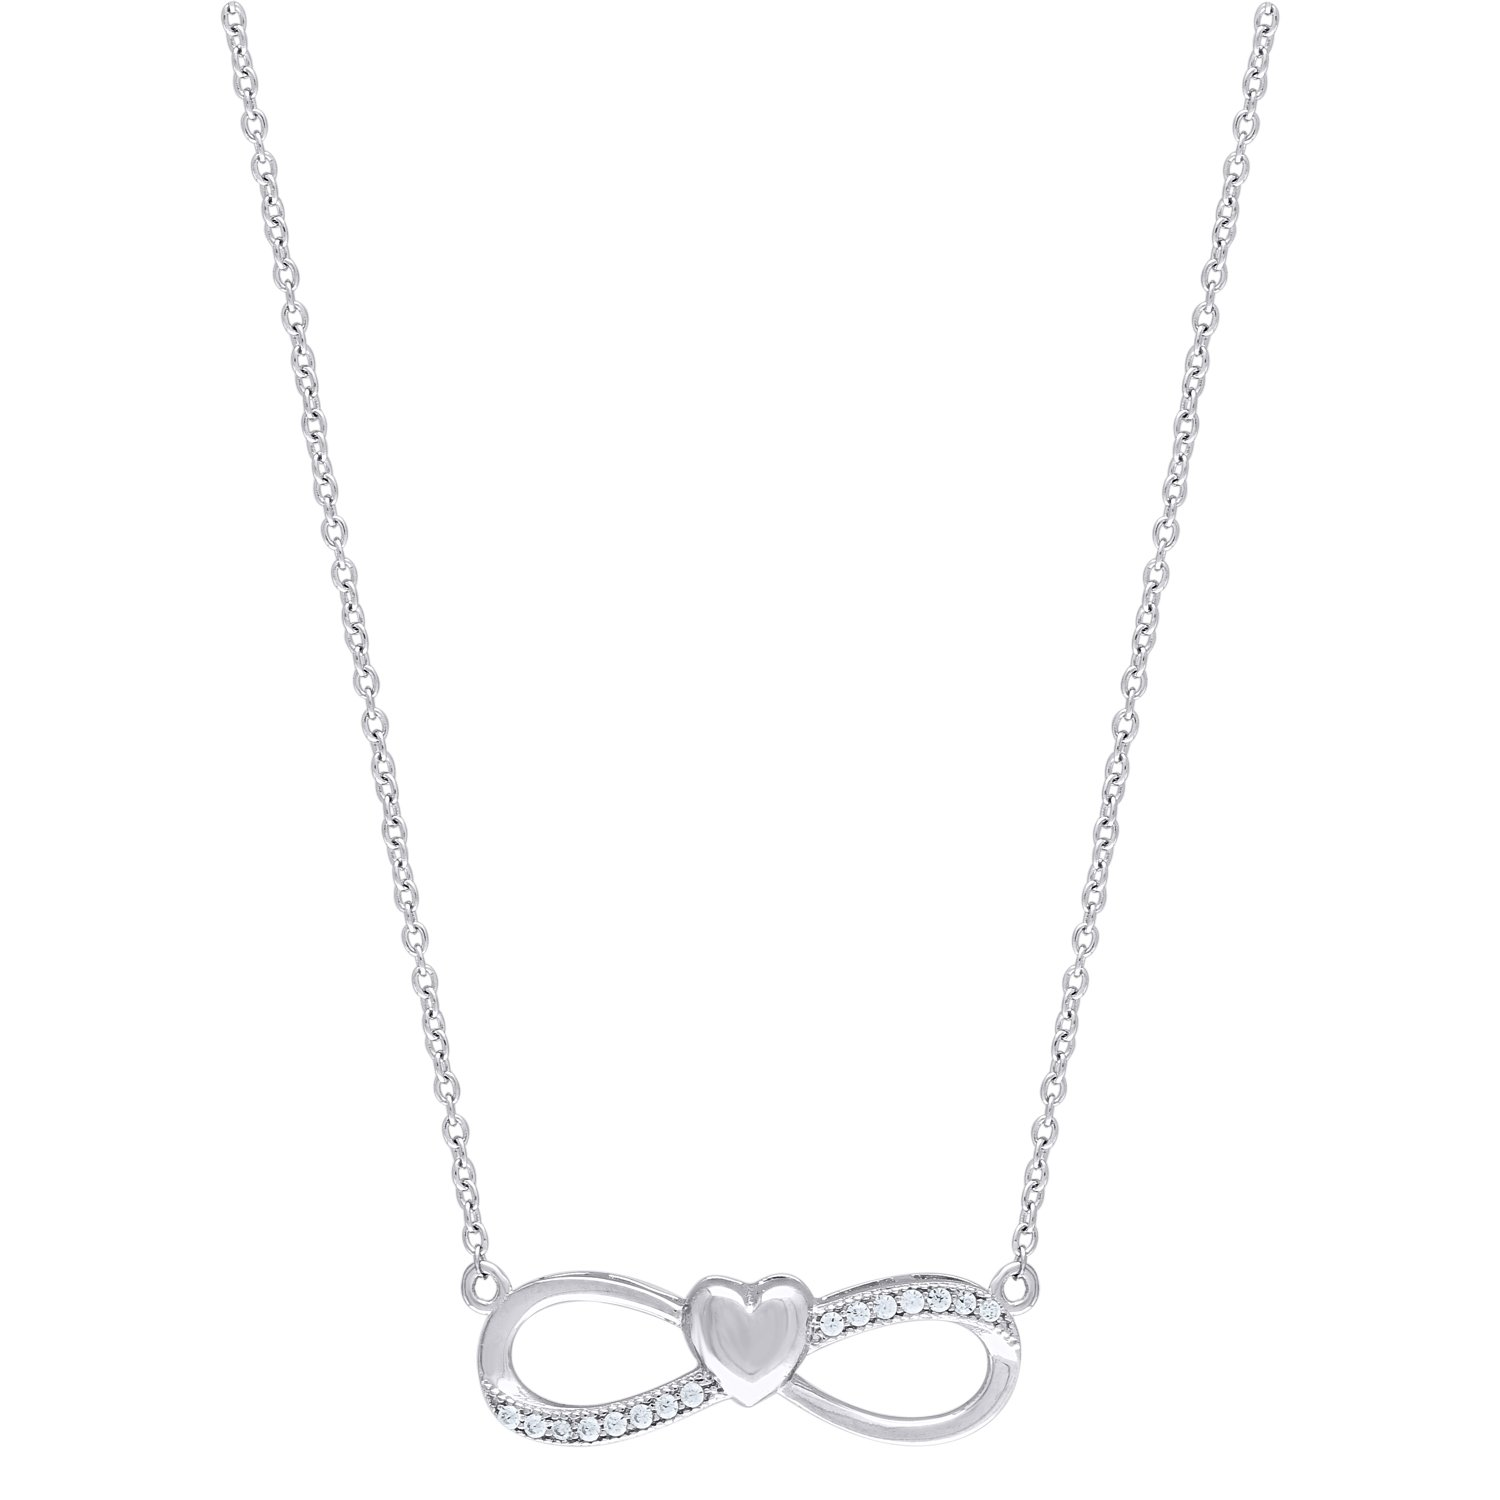 Jewels By Lux 925 Sterling Silver CZ Infinity Heart 2.54gm Womens Pendant Necklace